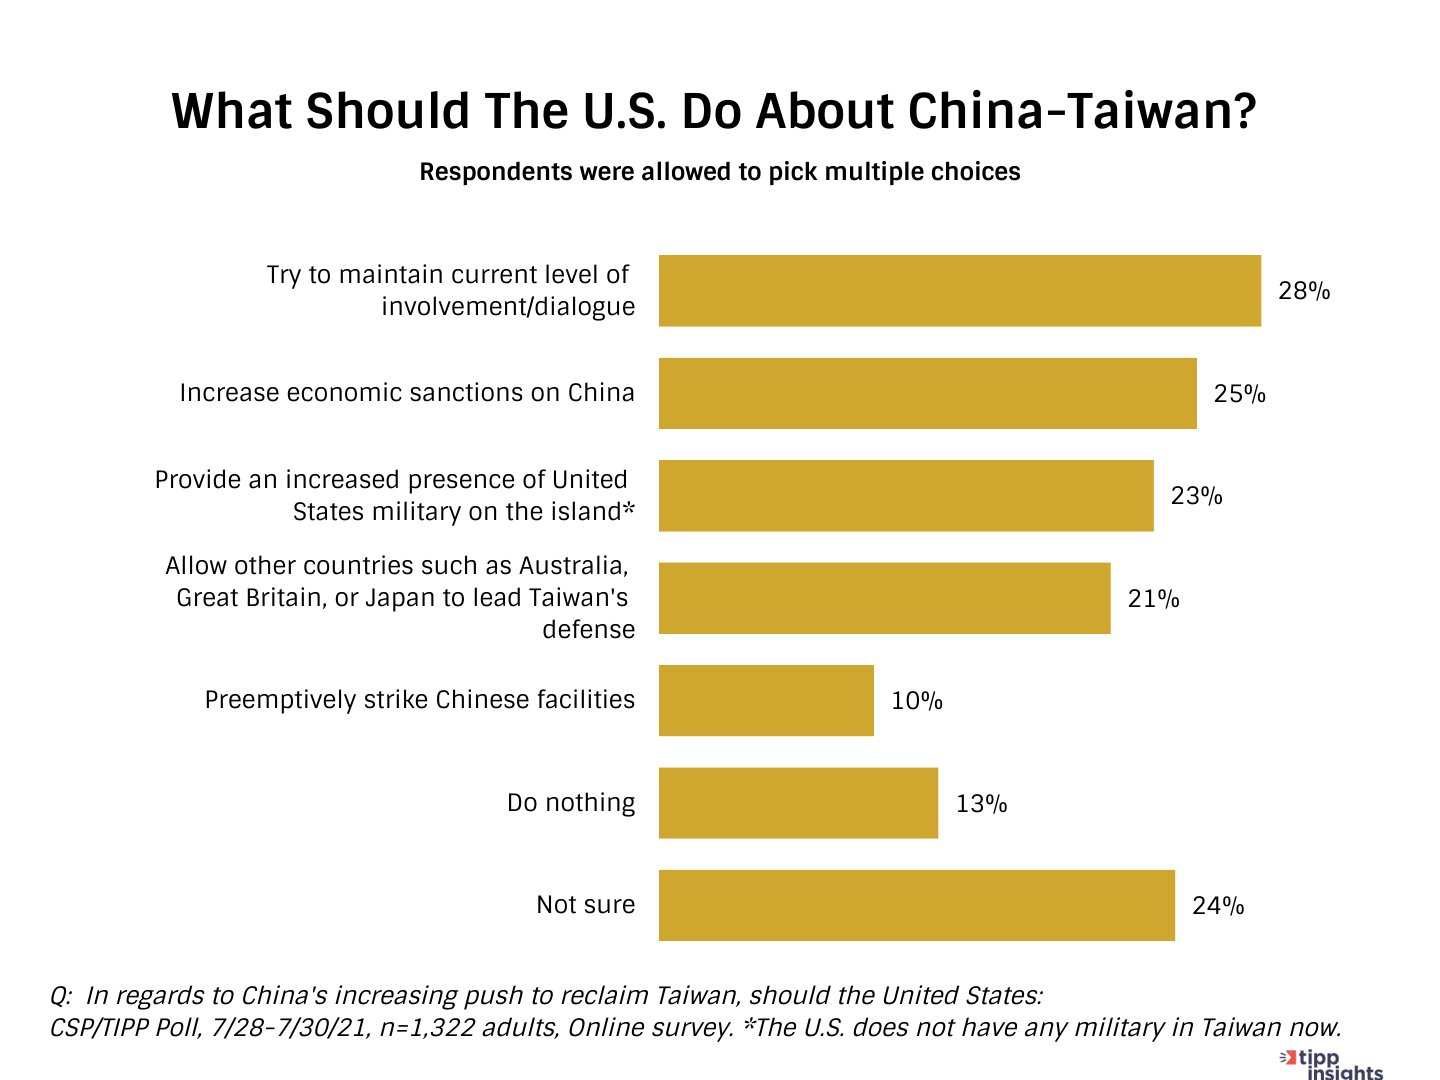 TIPP Poll Results Chart: Americans on What should the U.S. do about China-Taiwan?